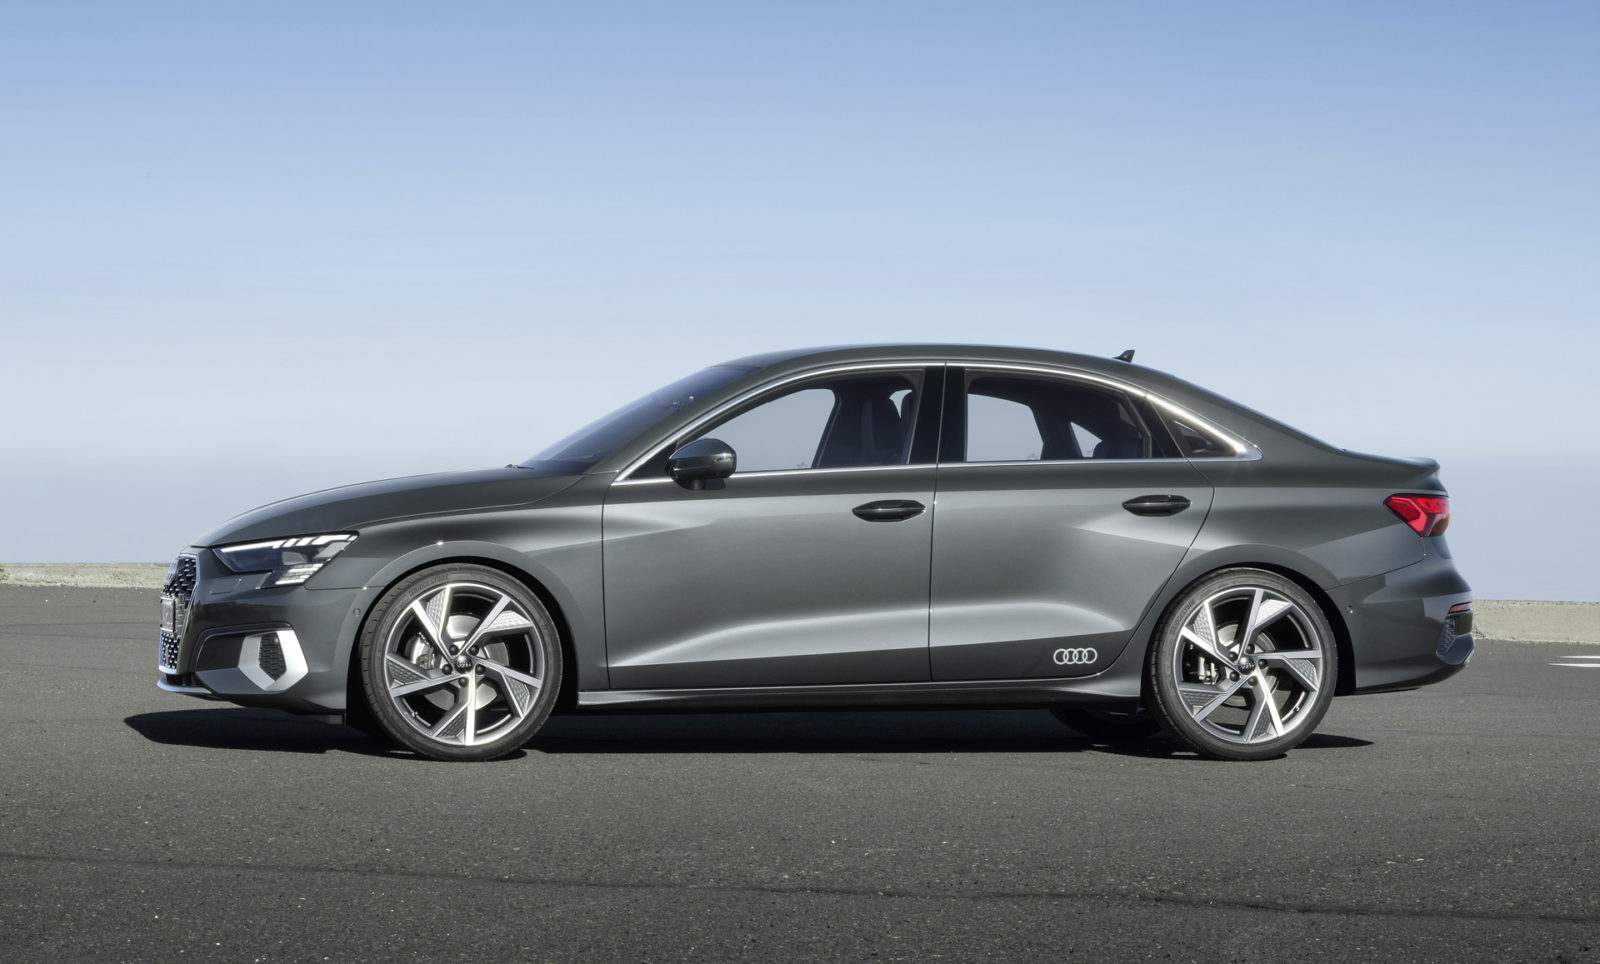 2022-audi-a3-and-s3-return-with-improved-engines-and-technology